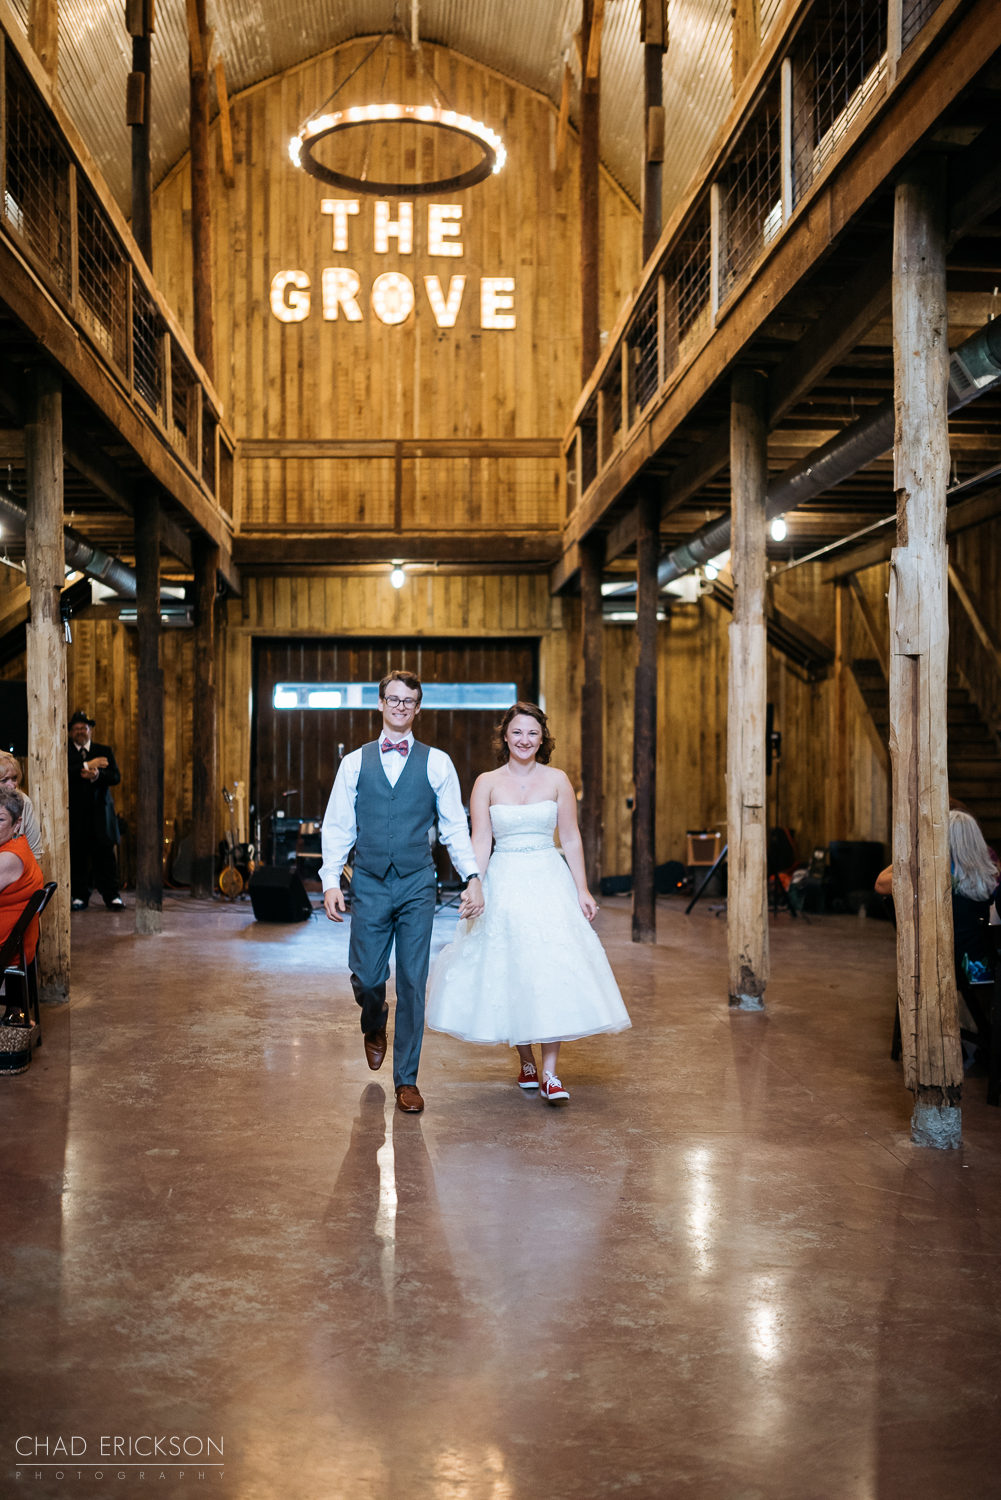 Bride and groom reception entrance under The Grove sign